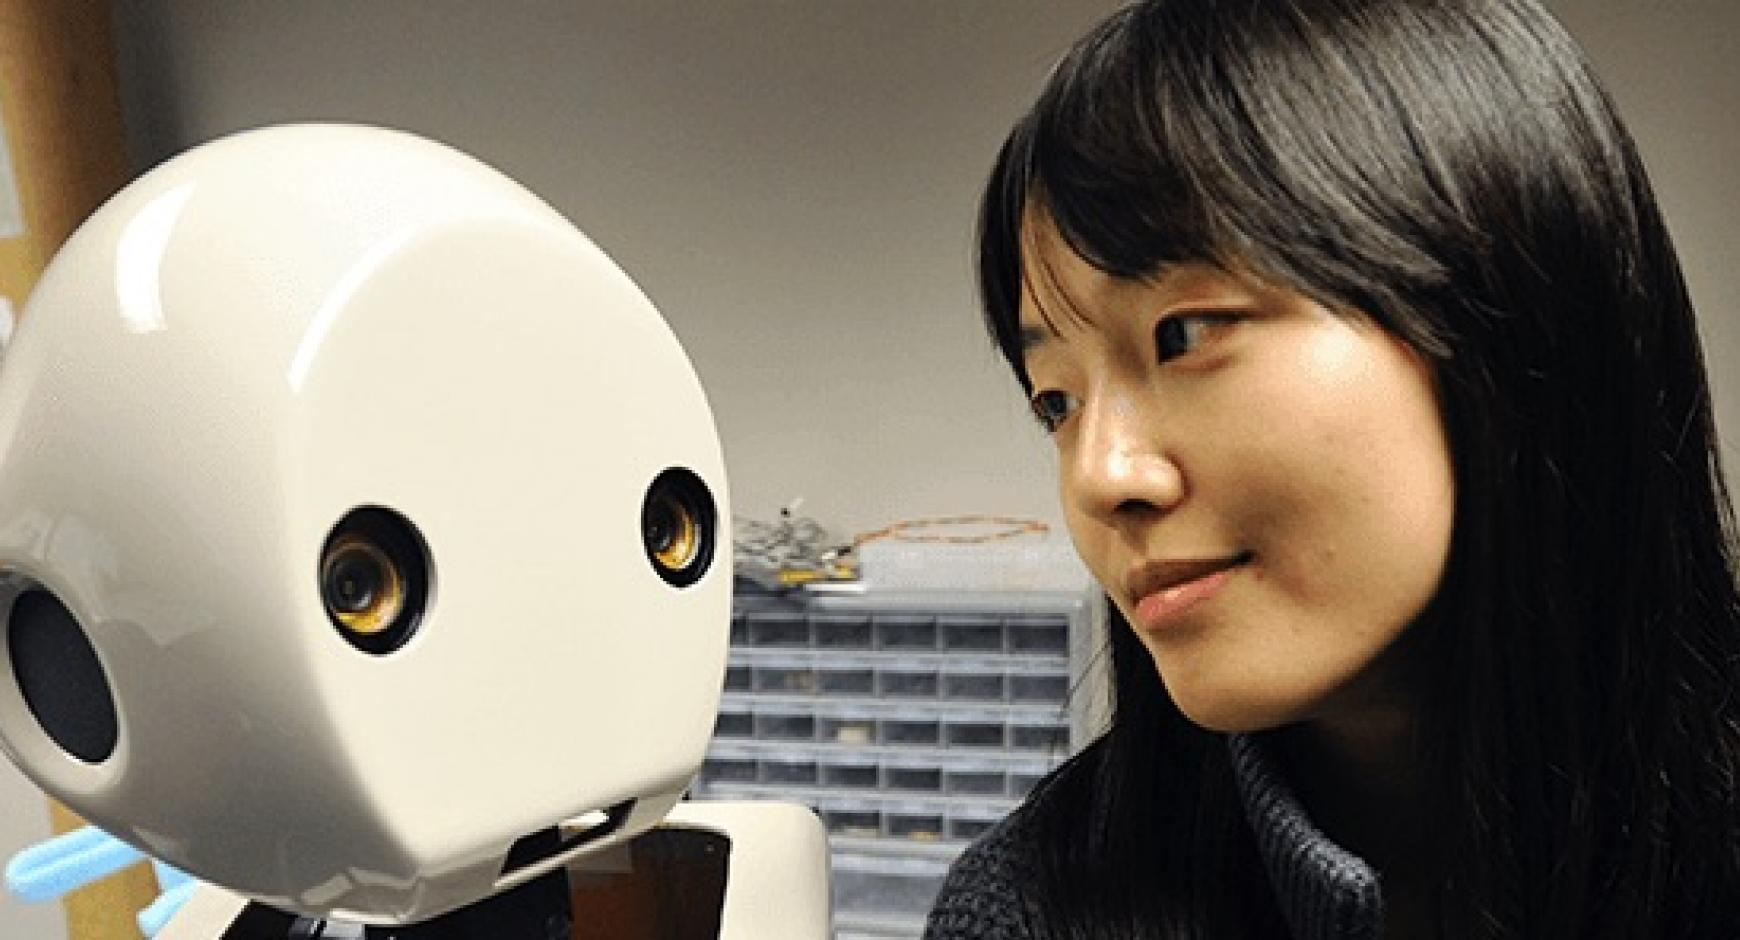 Professor Min Kyung Lee looking at the face of white robot